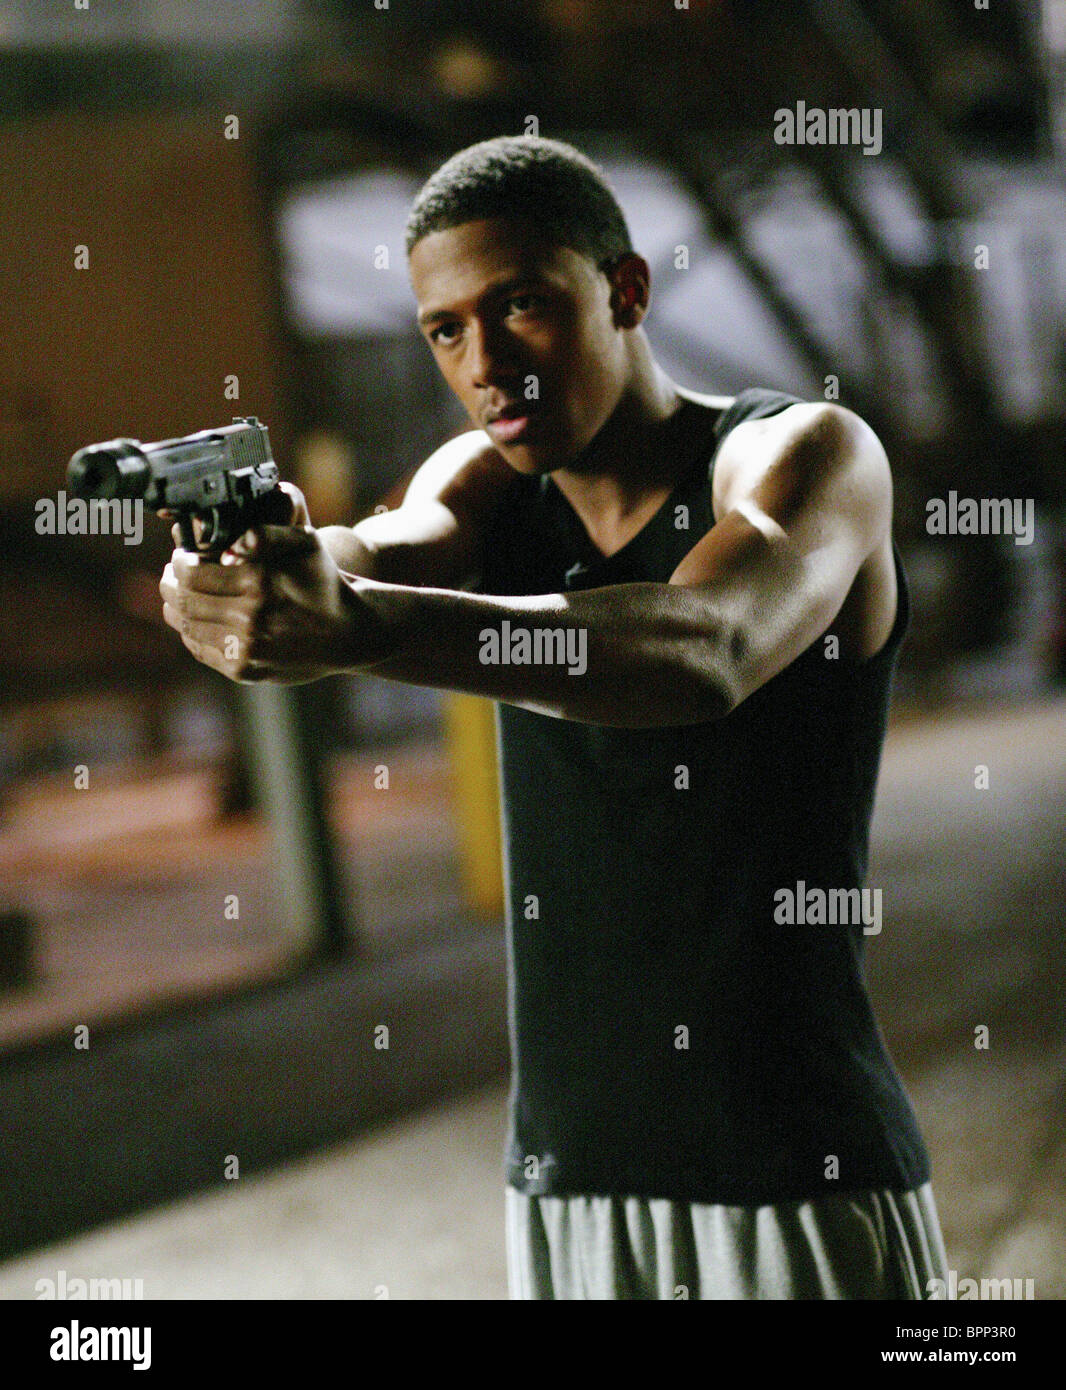 NICK CANNON THE UNDERCLASSMAN; THE UNDERCLASS MAN (2005) - Stock Image